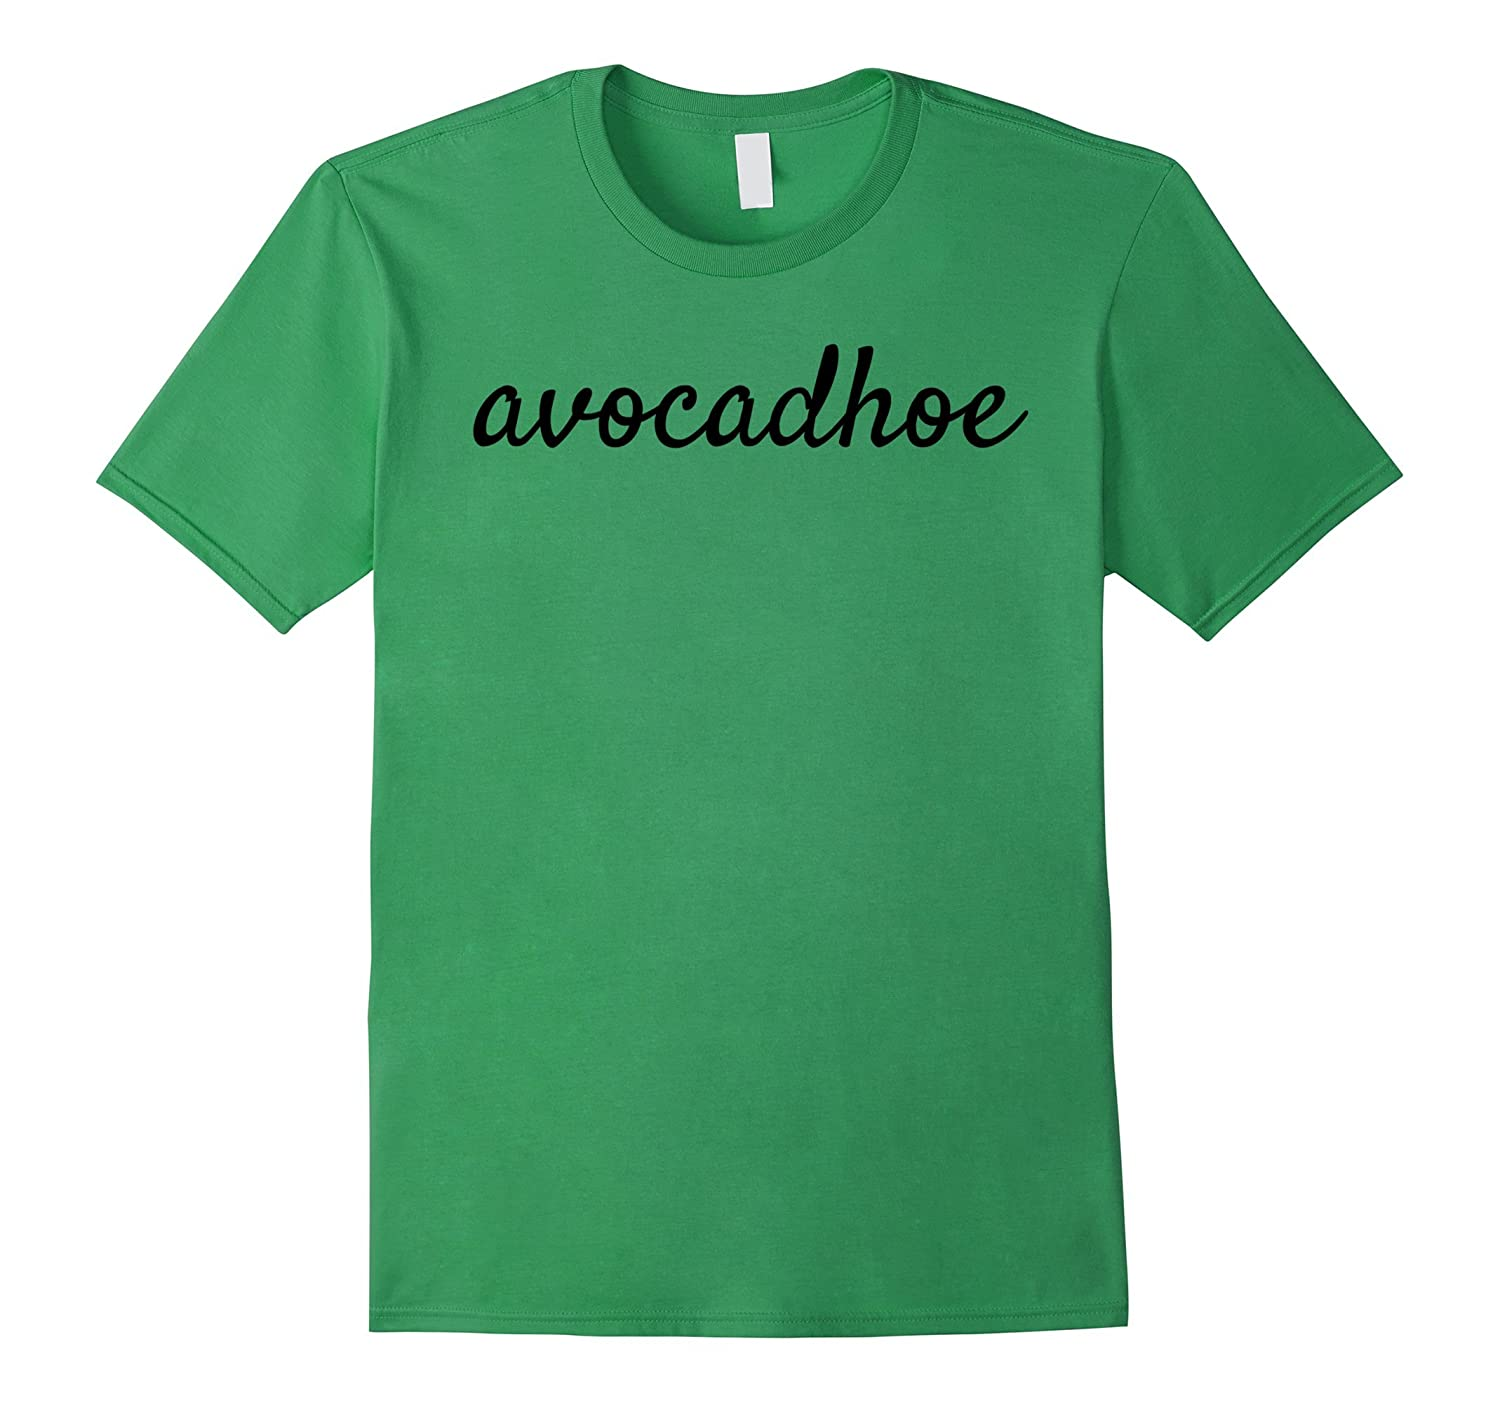 Avocadhoe T-Shirt - Avocado Lovers Must Have-PL